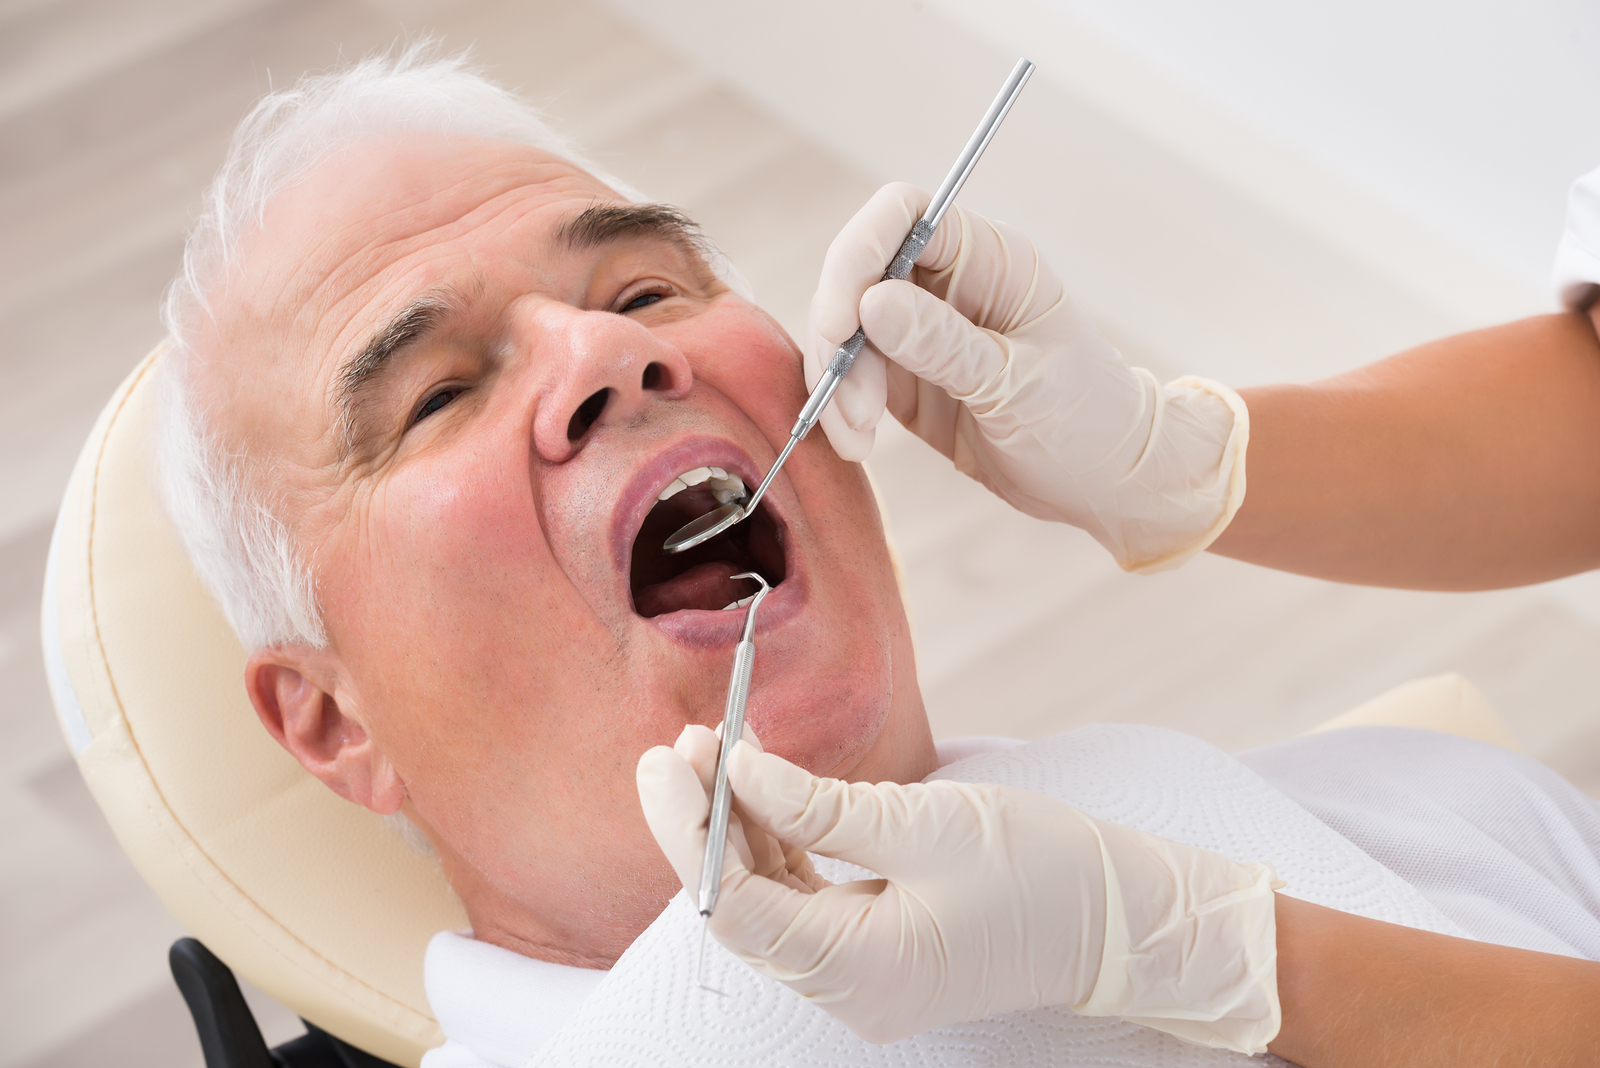 Discount Dental Treatment in Mexico